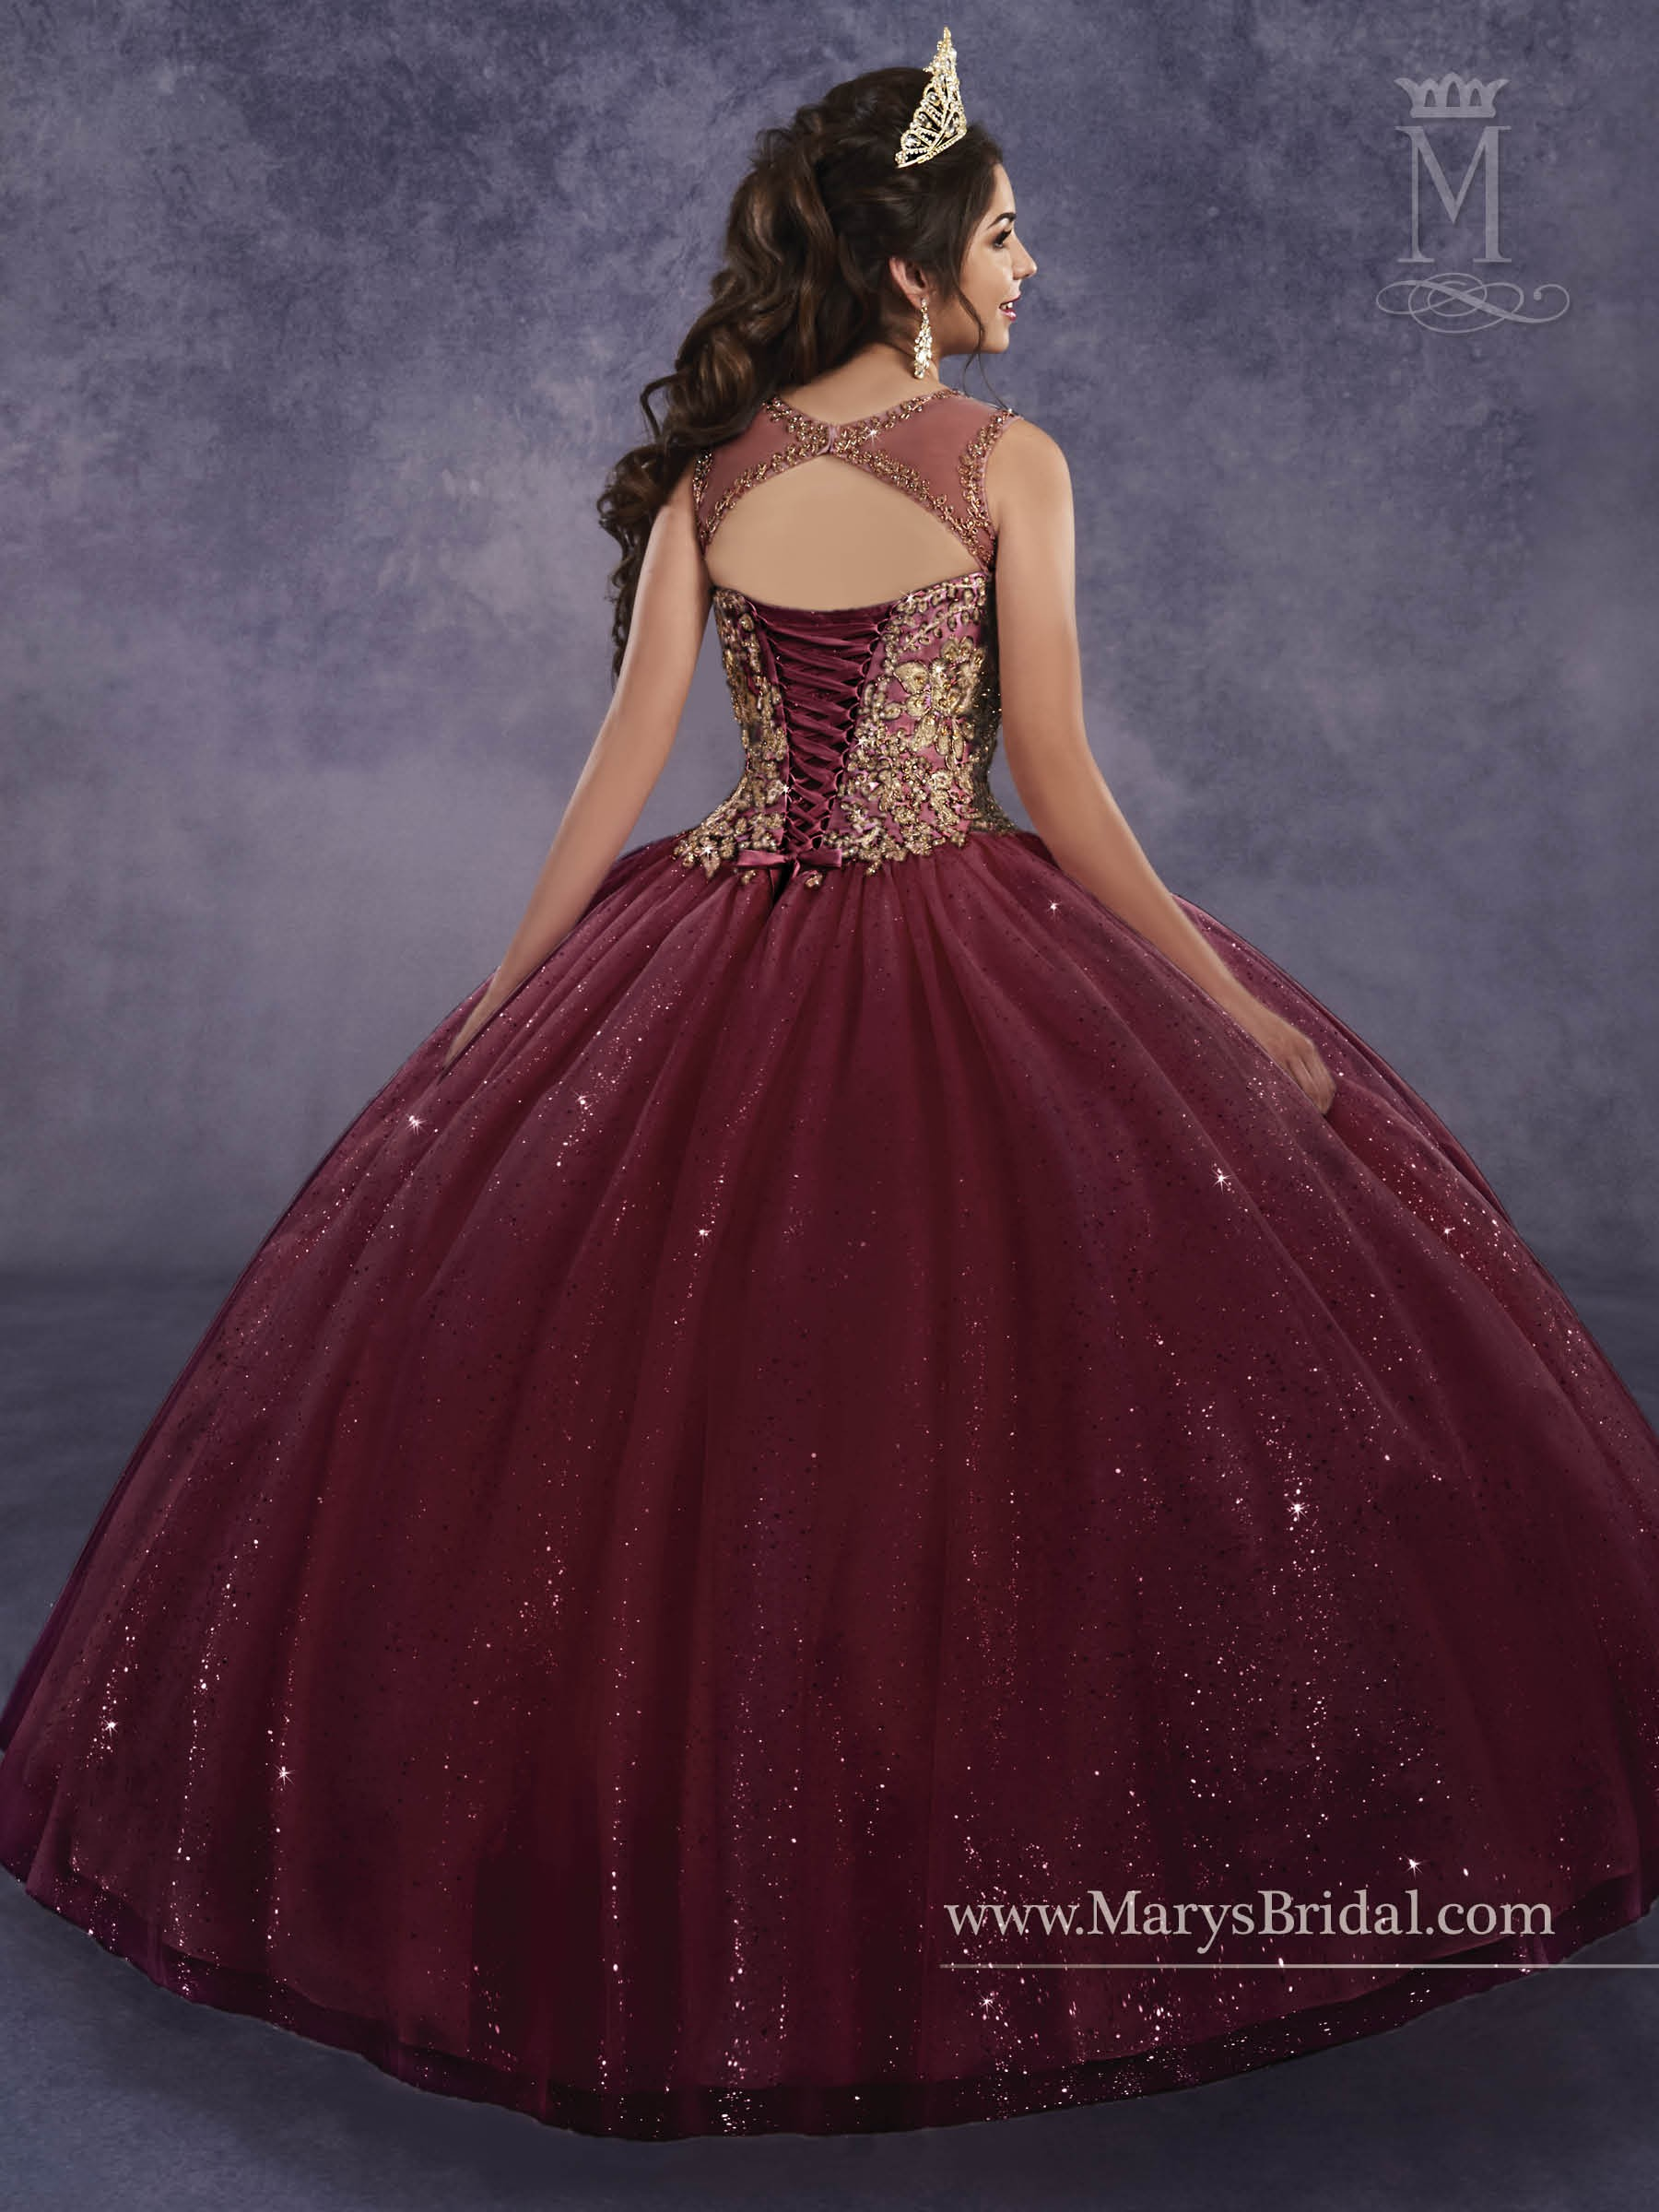 b1321afb8f1 ... Marys Bridal 4Q496 Quinceanera Dress